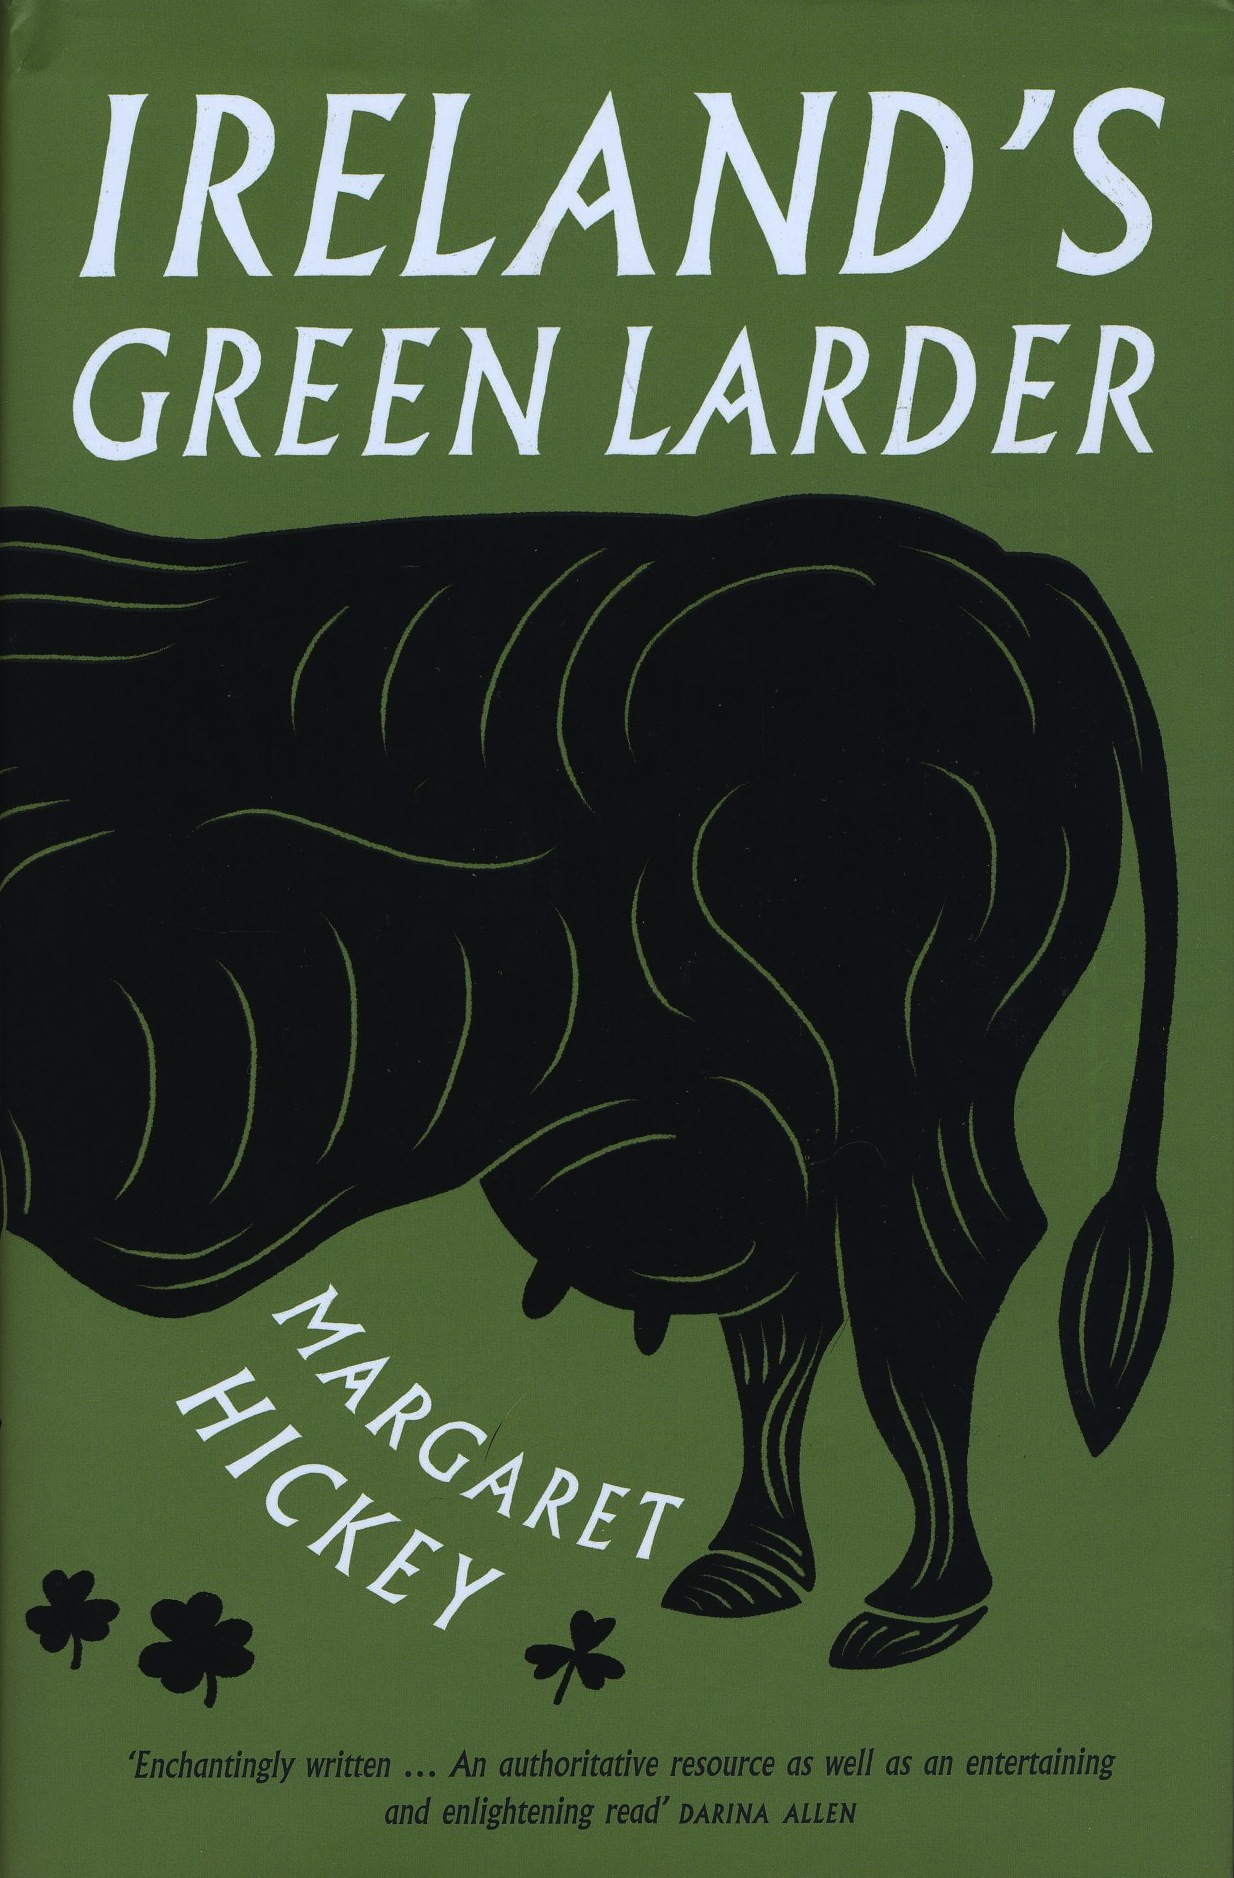 Margaret Hickey's new book, Ireland's Green Larder (Unbound, Hardback £20; online sellers)